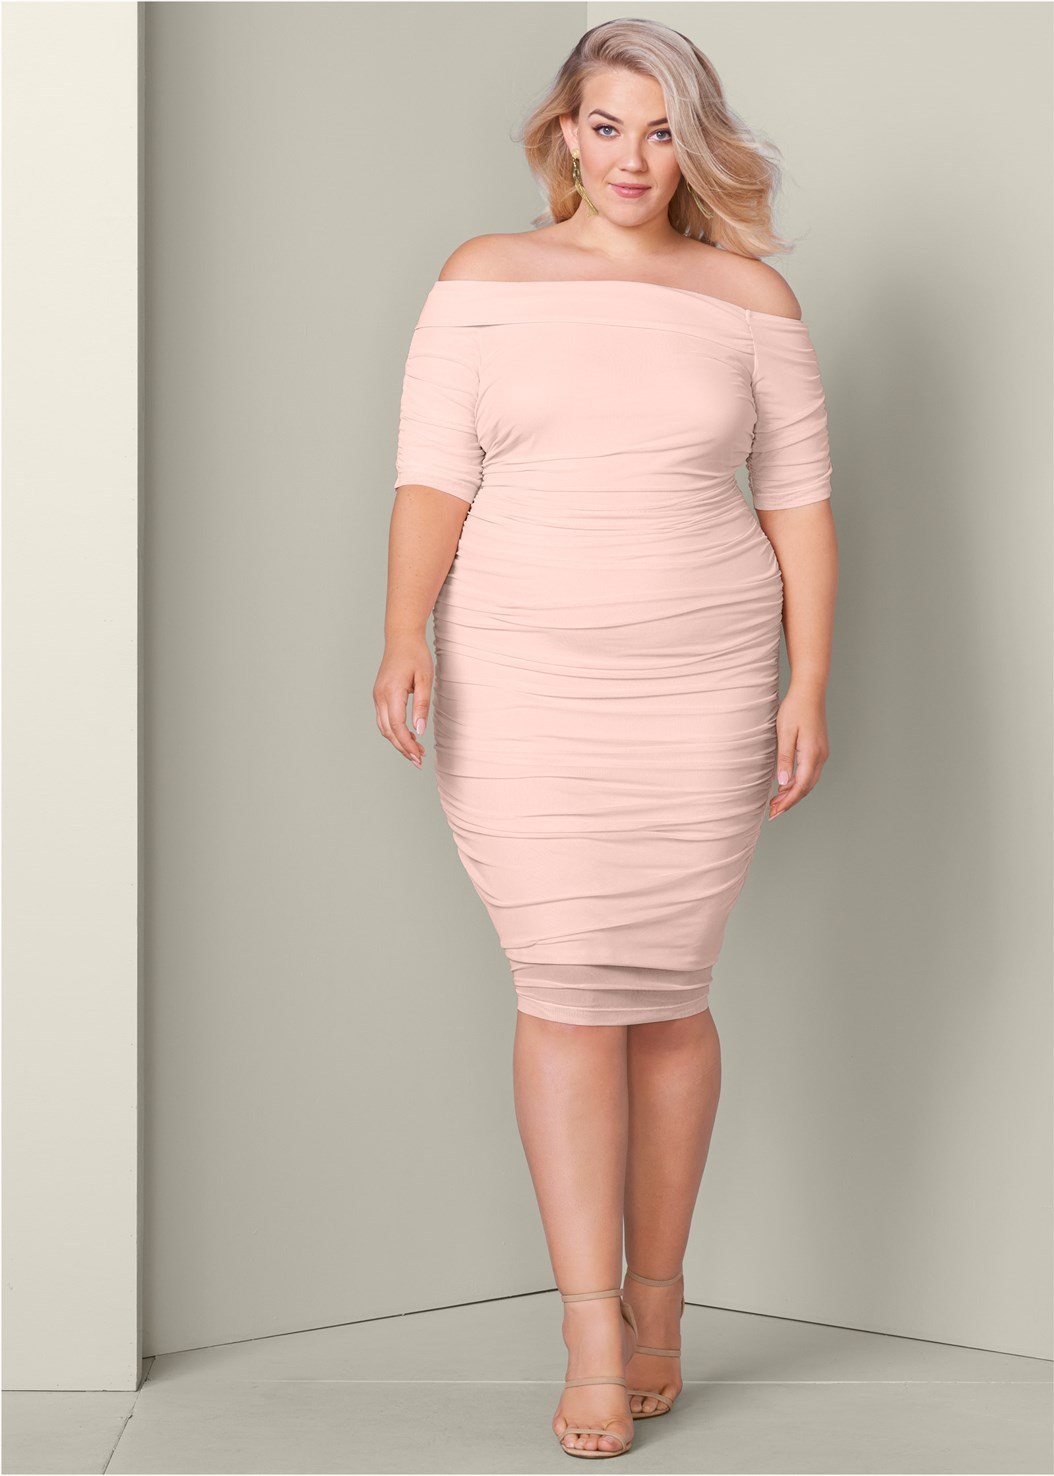 20 of the Prettiest of Spring\'s Plus Size Dresses to Kick ...